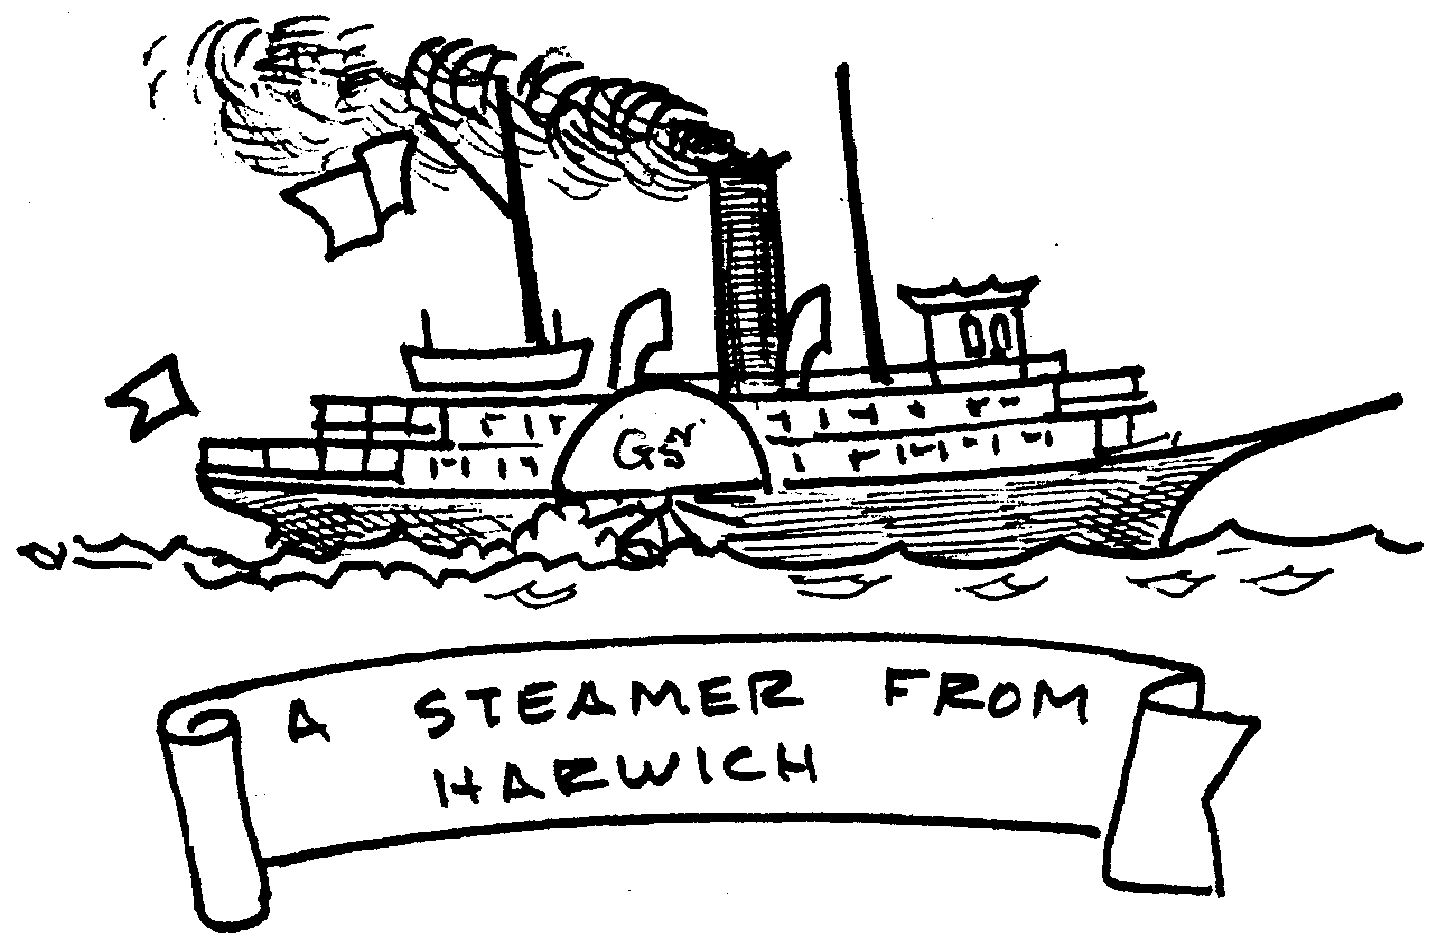 Sketch of A steamer from Harwich